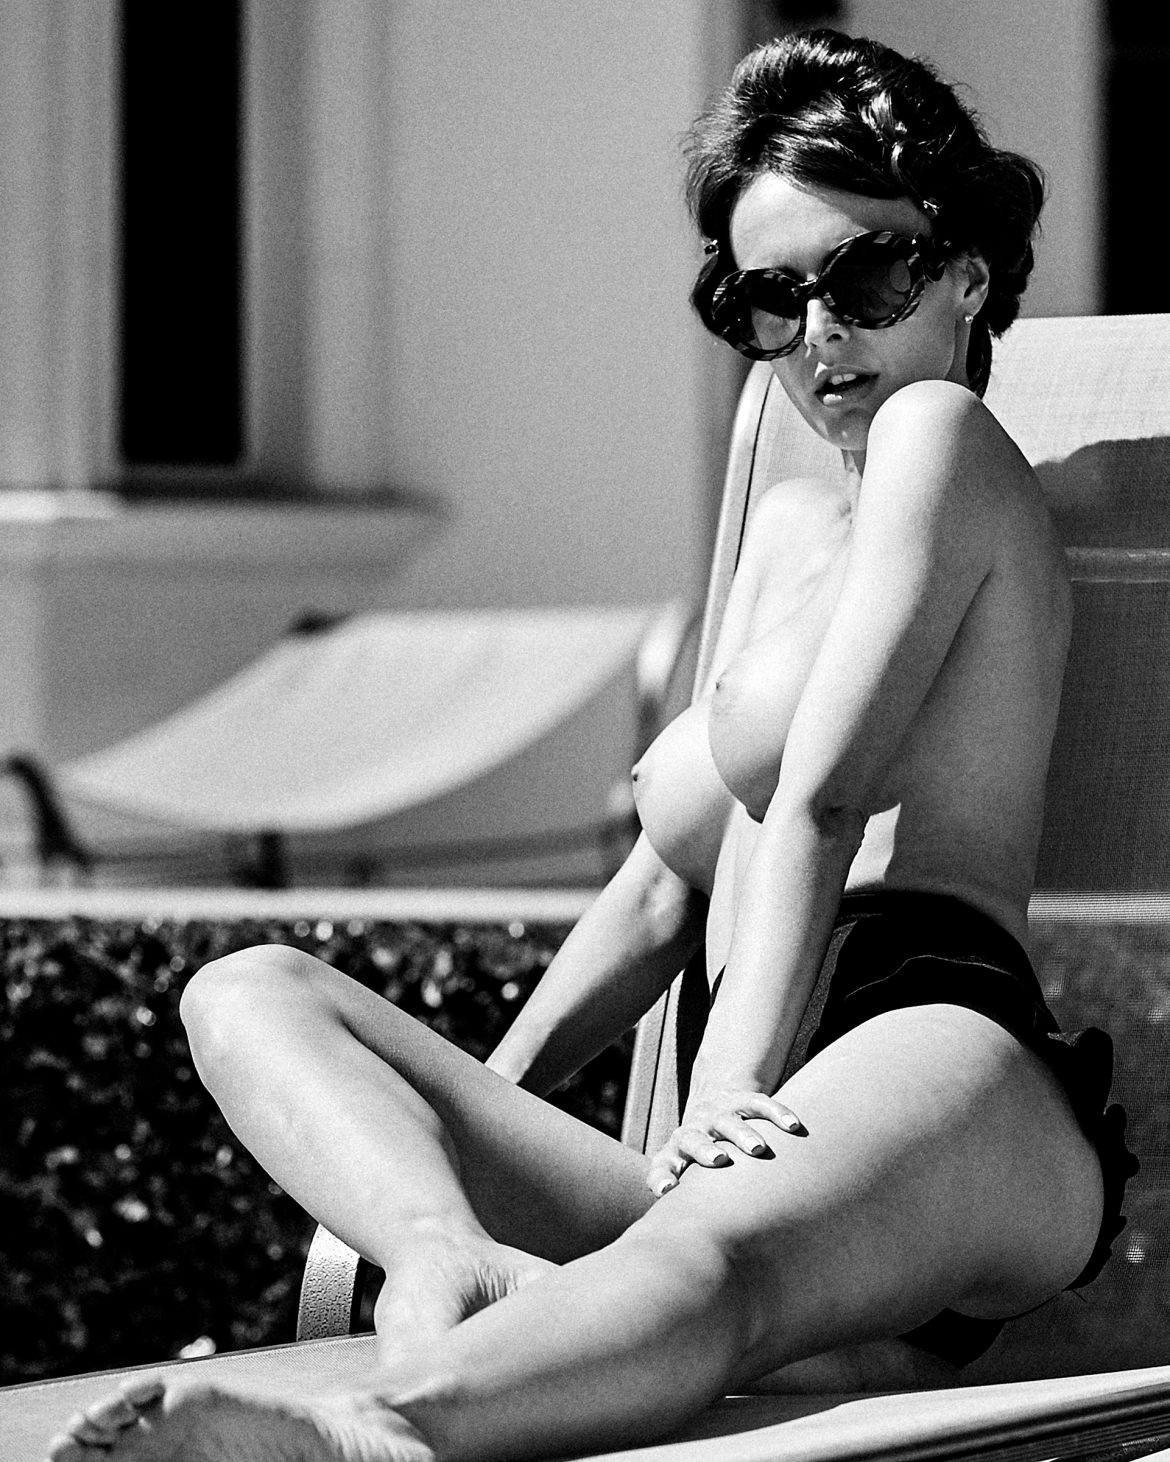 Tuane Women  tuane schulz photographer nudes nude art model lionsmag lingerie John Ciambrone fashion model fashion editorial body art blackandwhite   // lionsmag.com - premium nude photography magazine